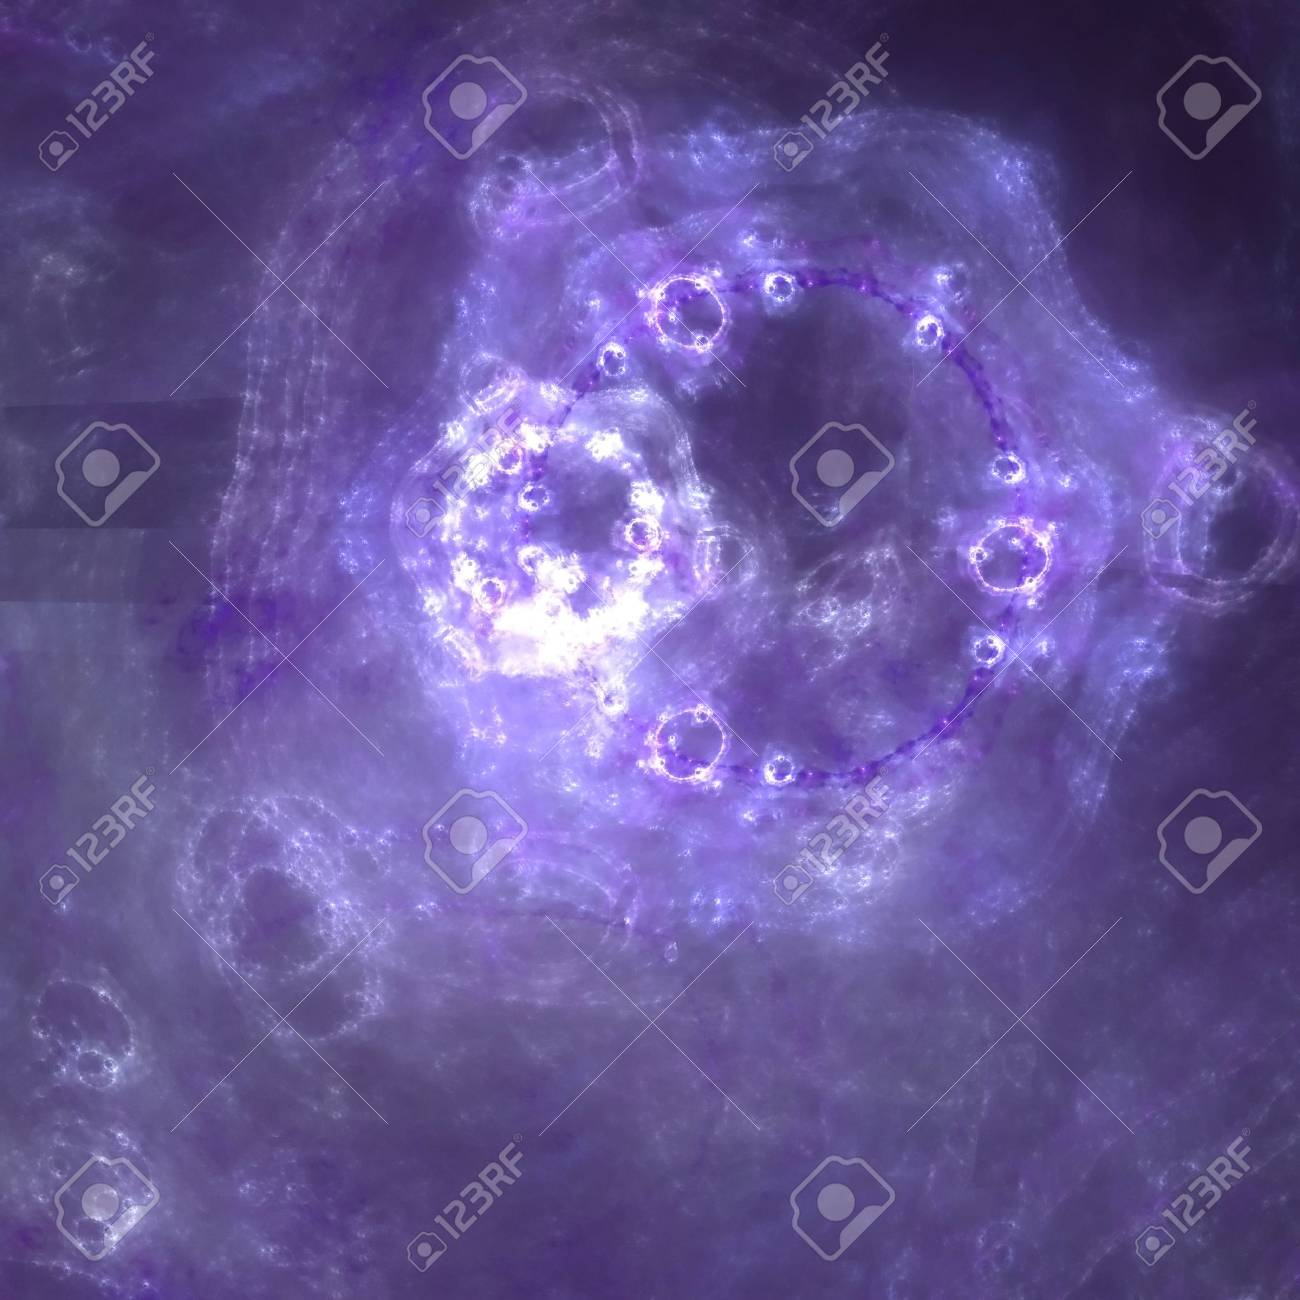 Abstract background. White - purple palette. Raster fractal graphics. Stock Photo - 4604601